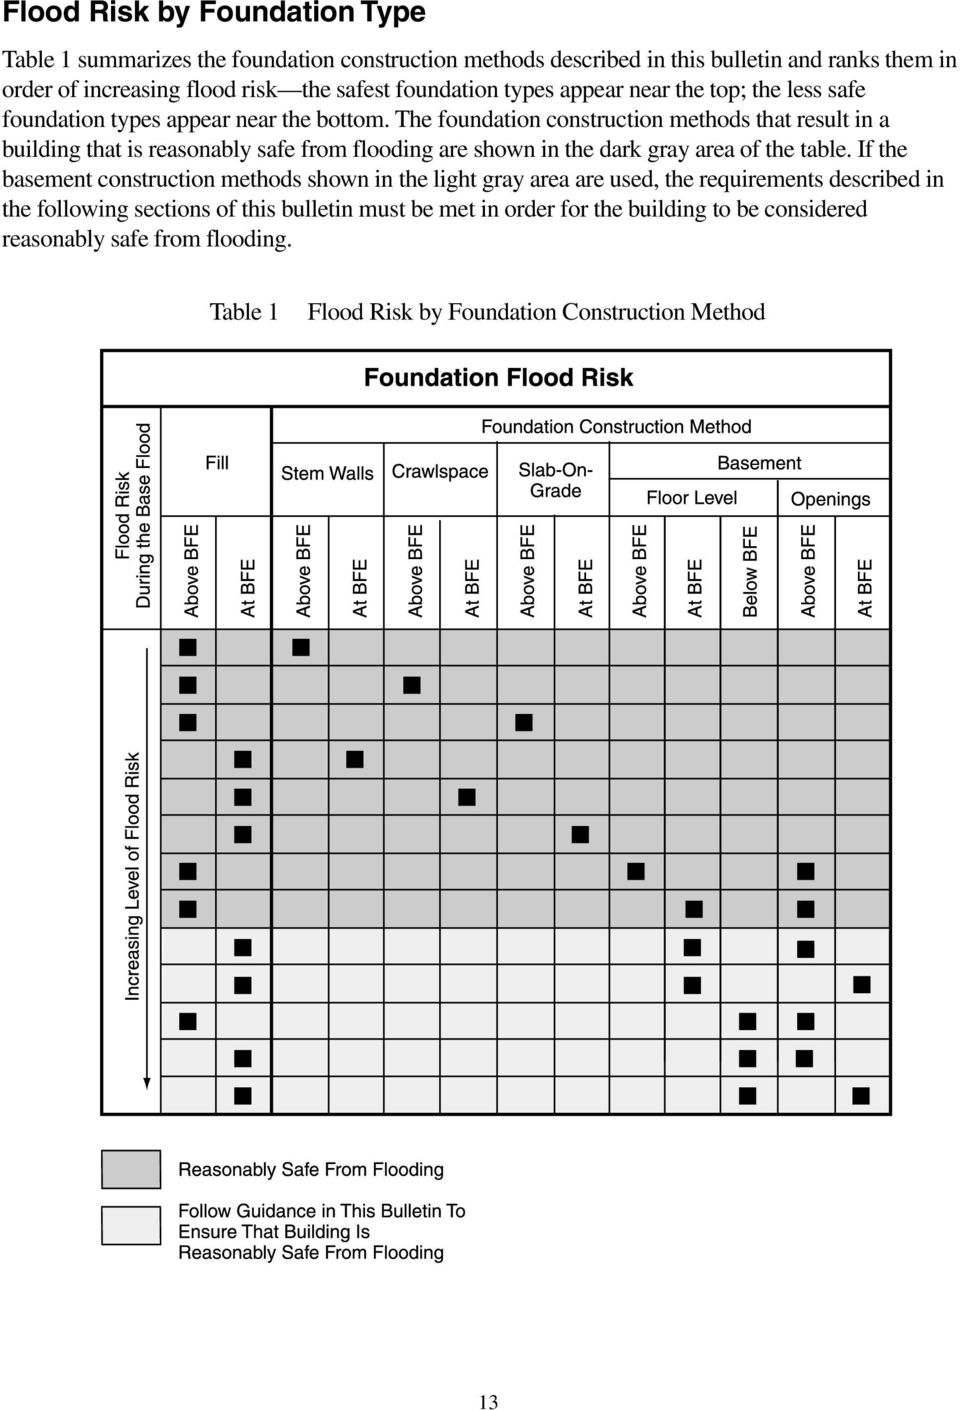 The foundation construction methods that result in a building that is reasonably safe from flooding are shown in the dark gray area of the table.